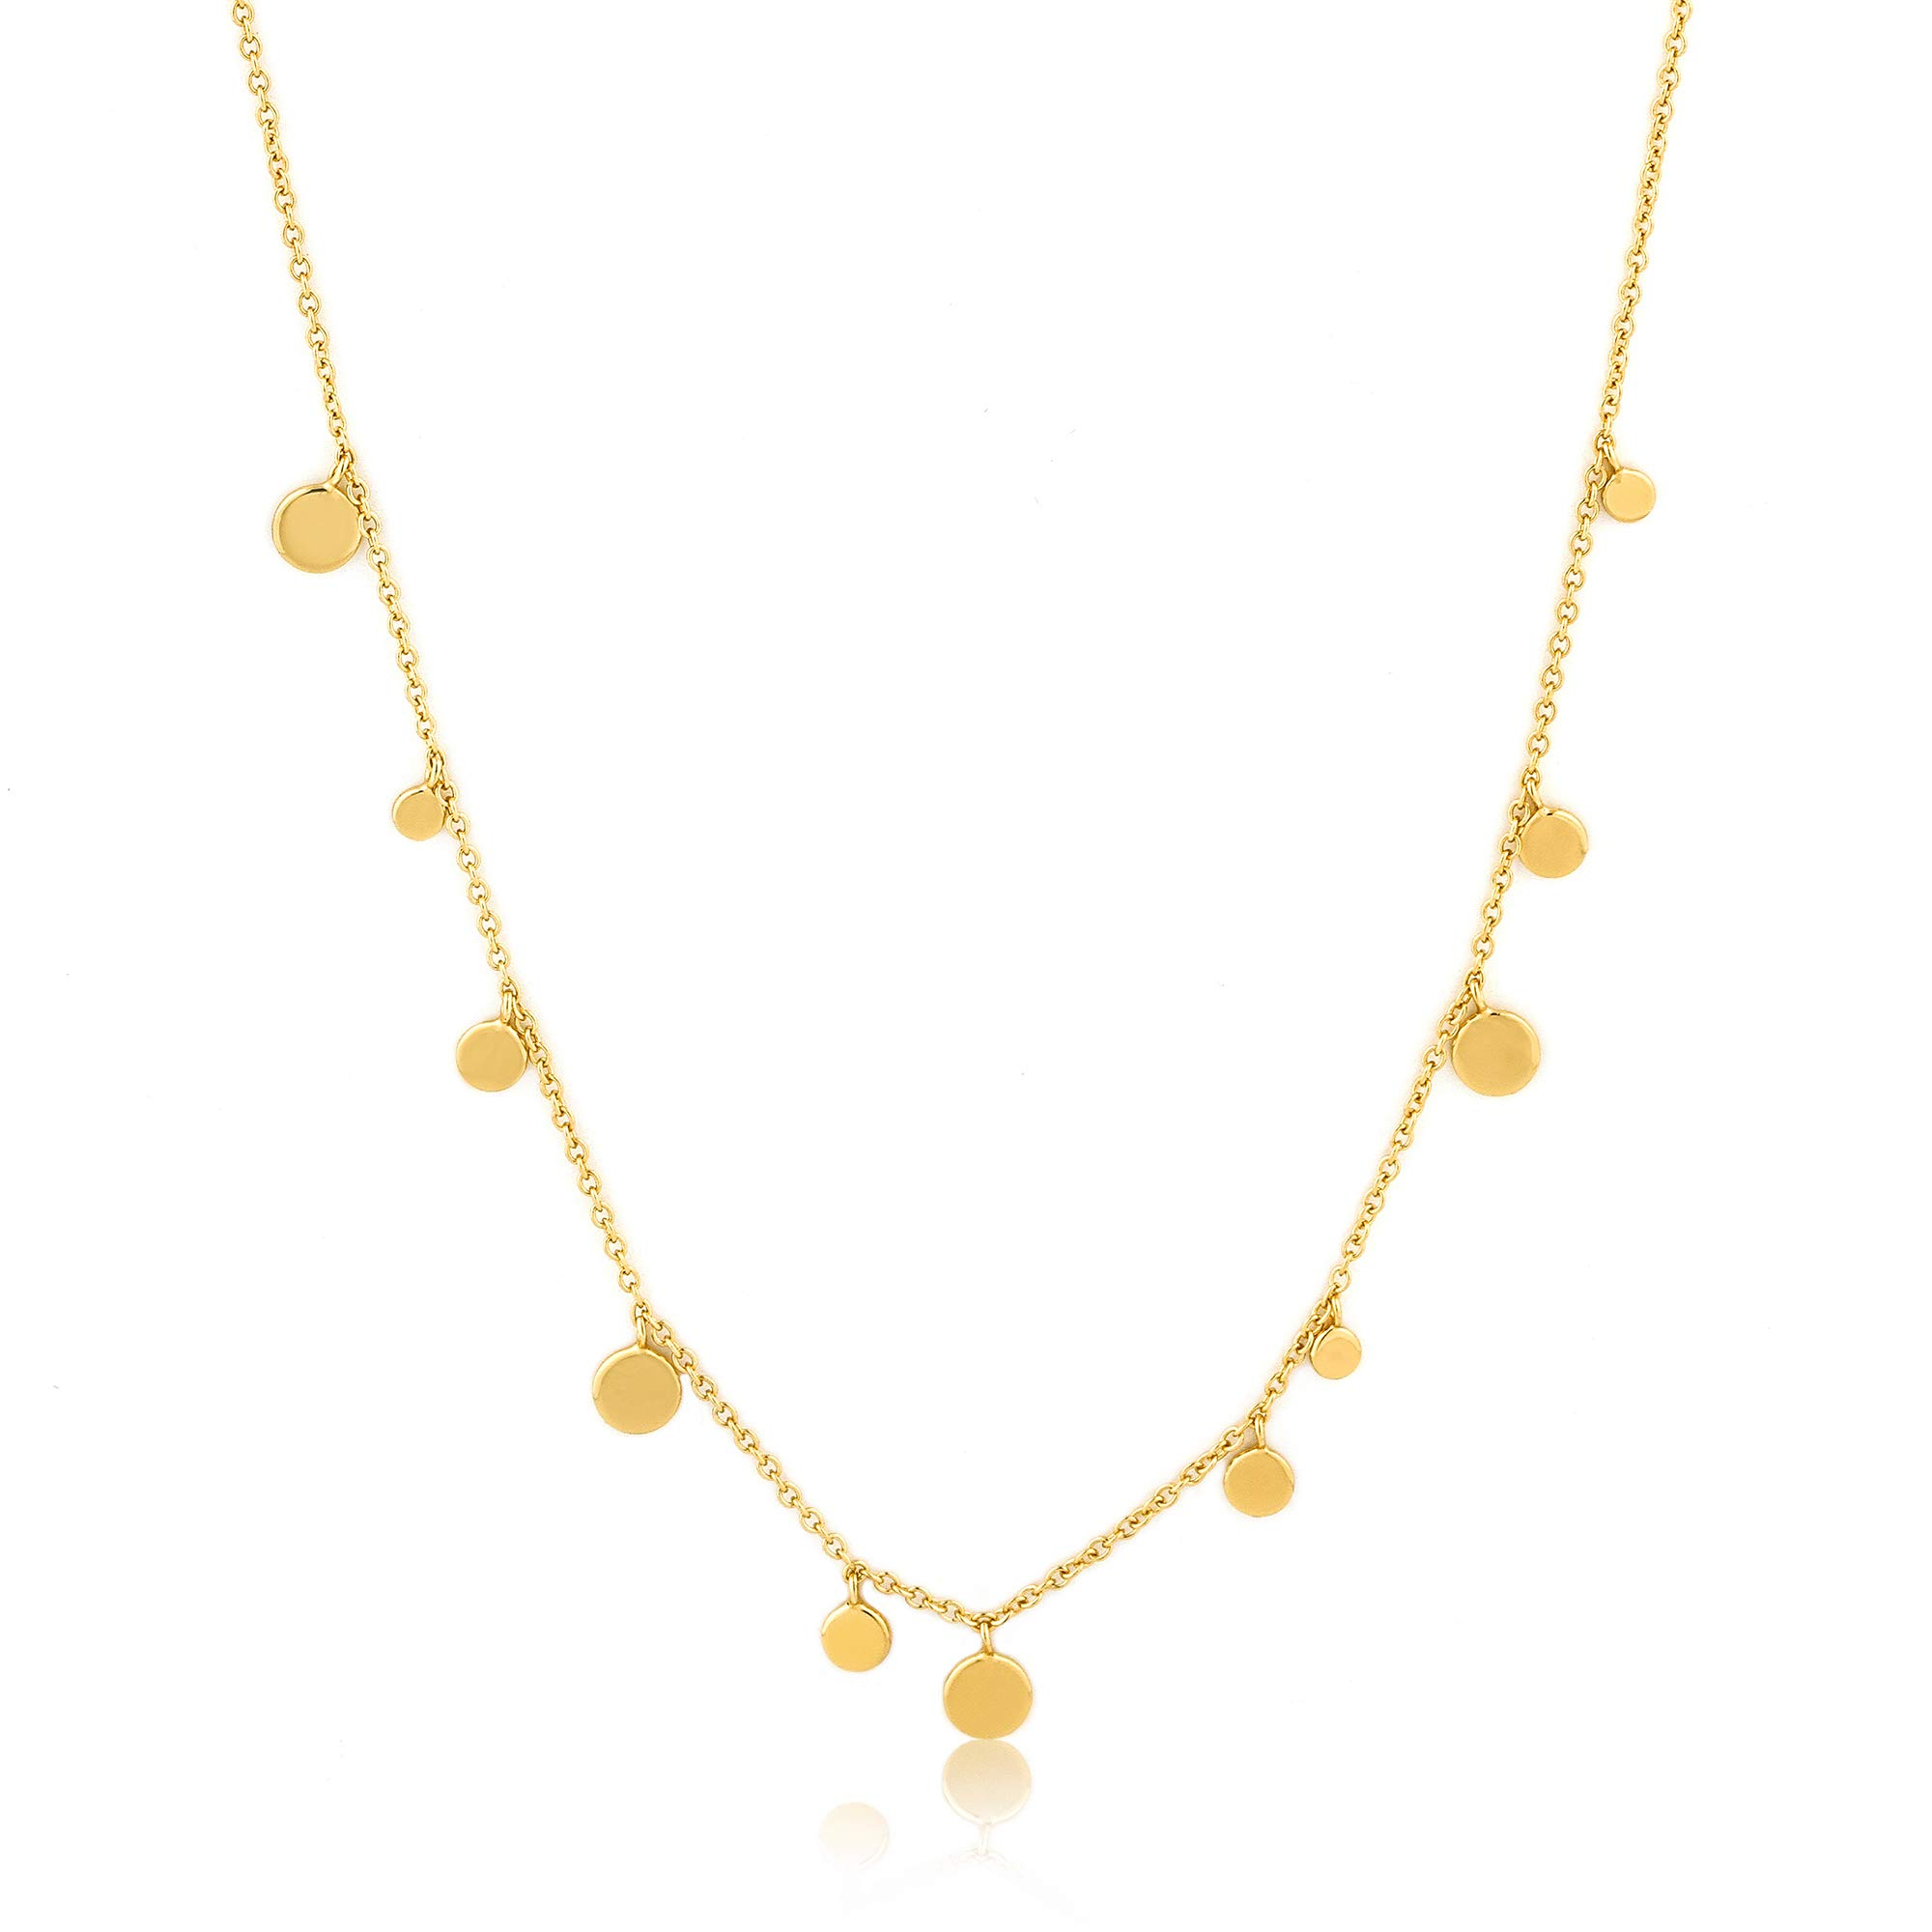 Fun Boho 925 Sterling Silver Layered Dainty Delicate Ball Circle Disk Necklace, Yellow Gold Plated by ANIA HAIE